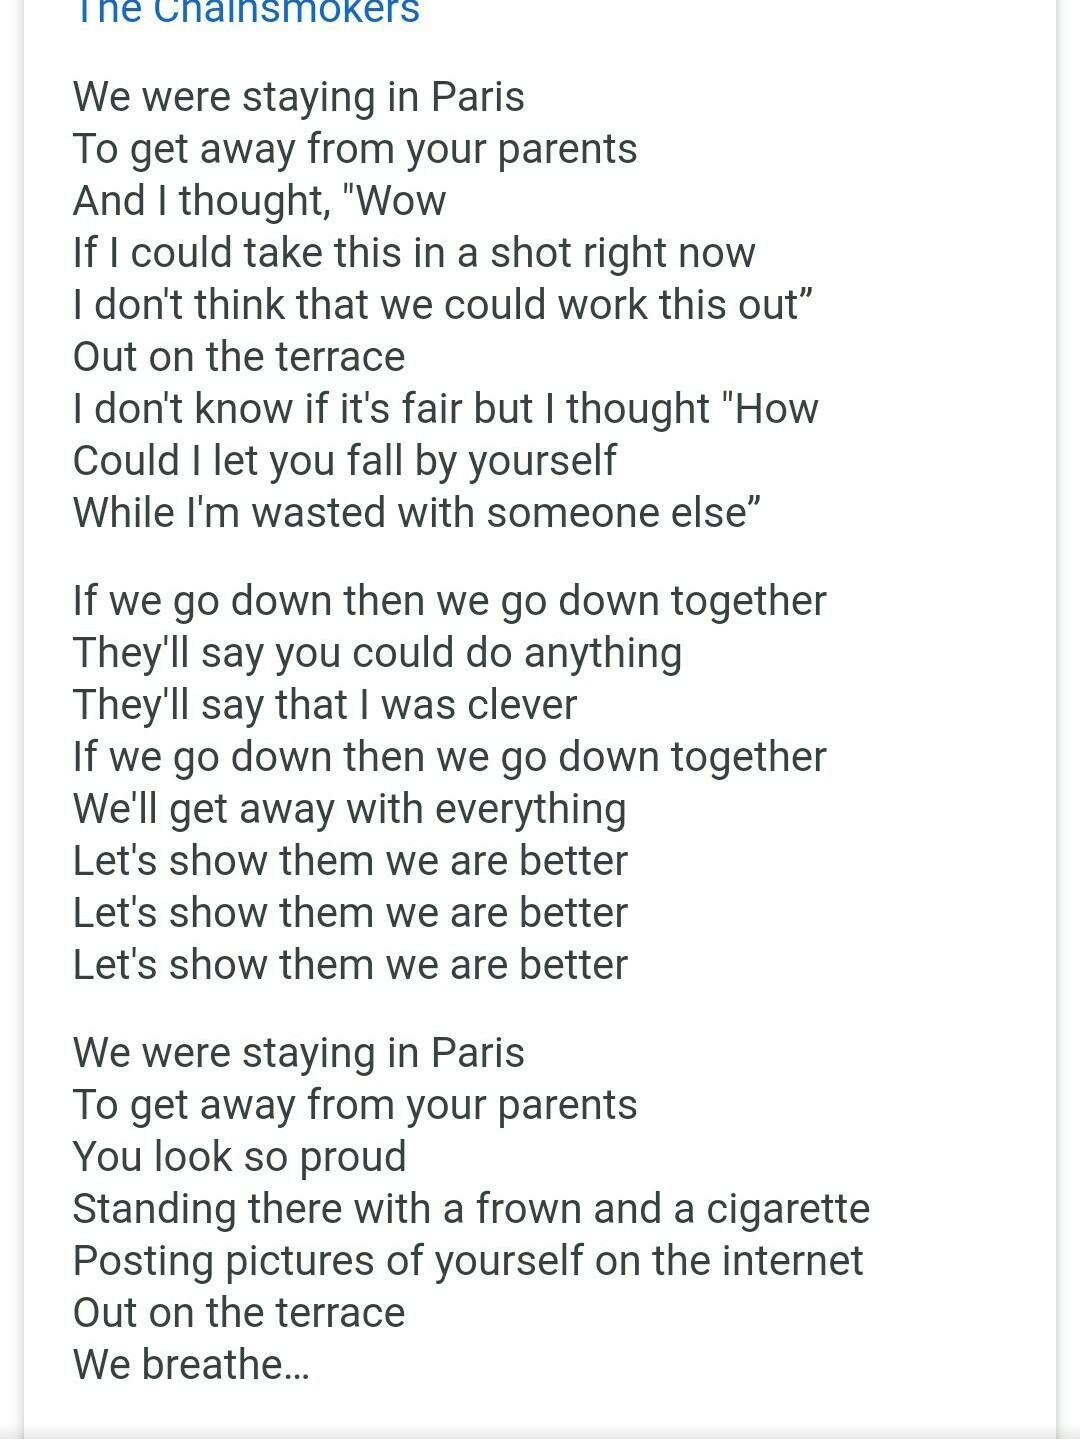 Give Me The Lyrics Of Paris Song By Chainsmokers Brainly In